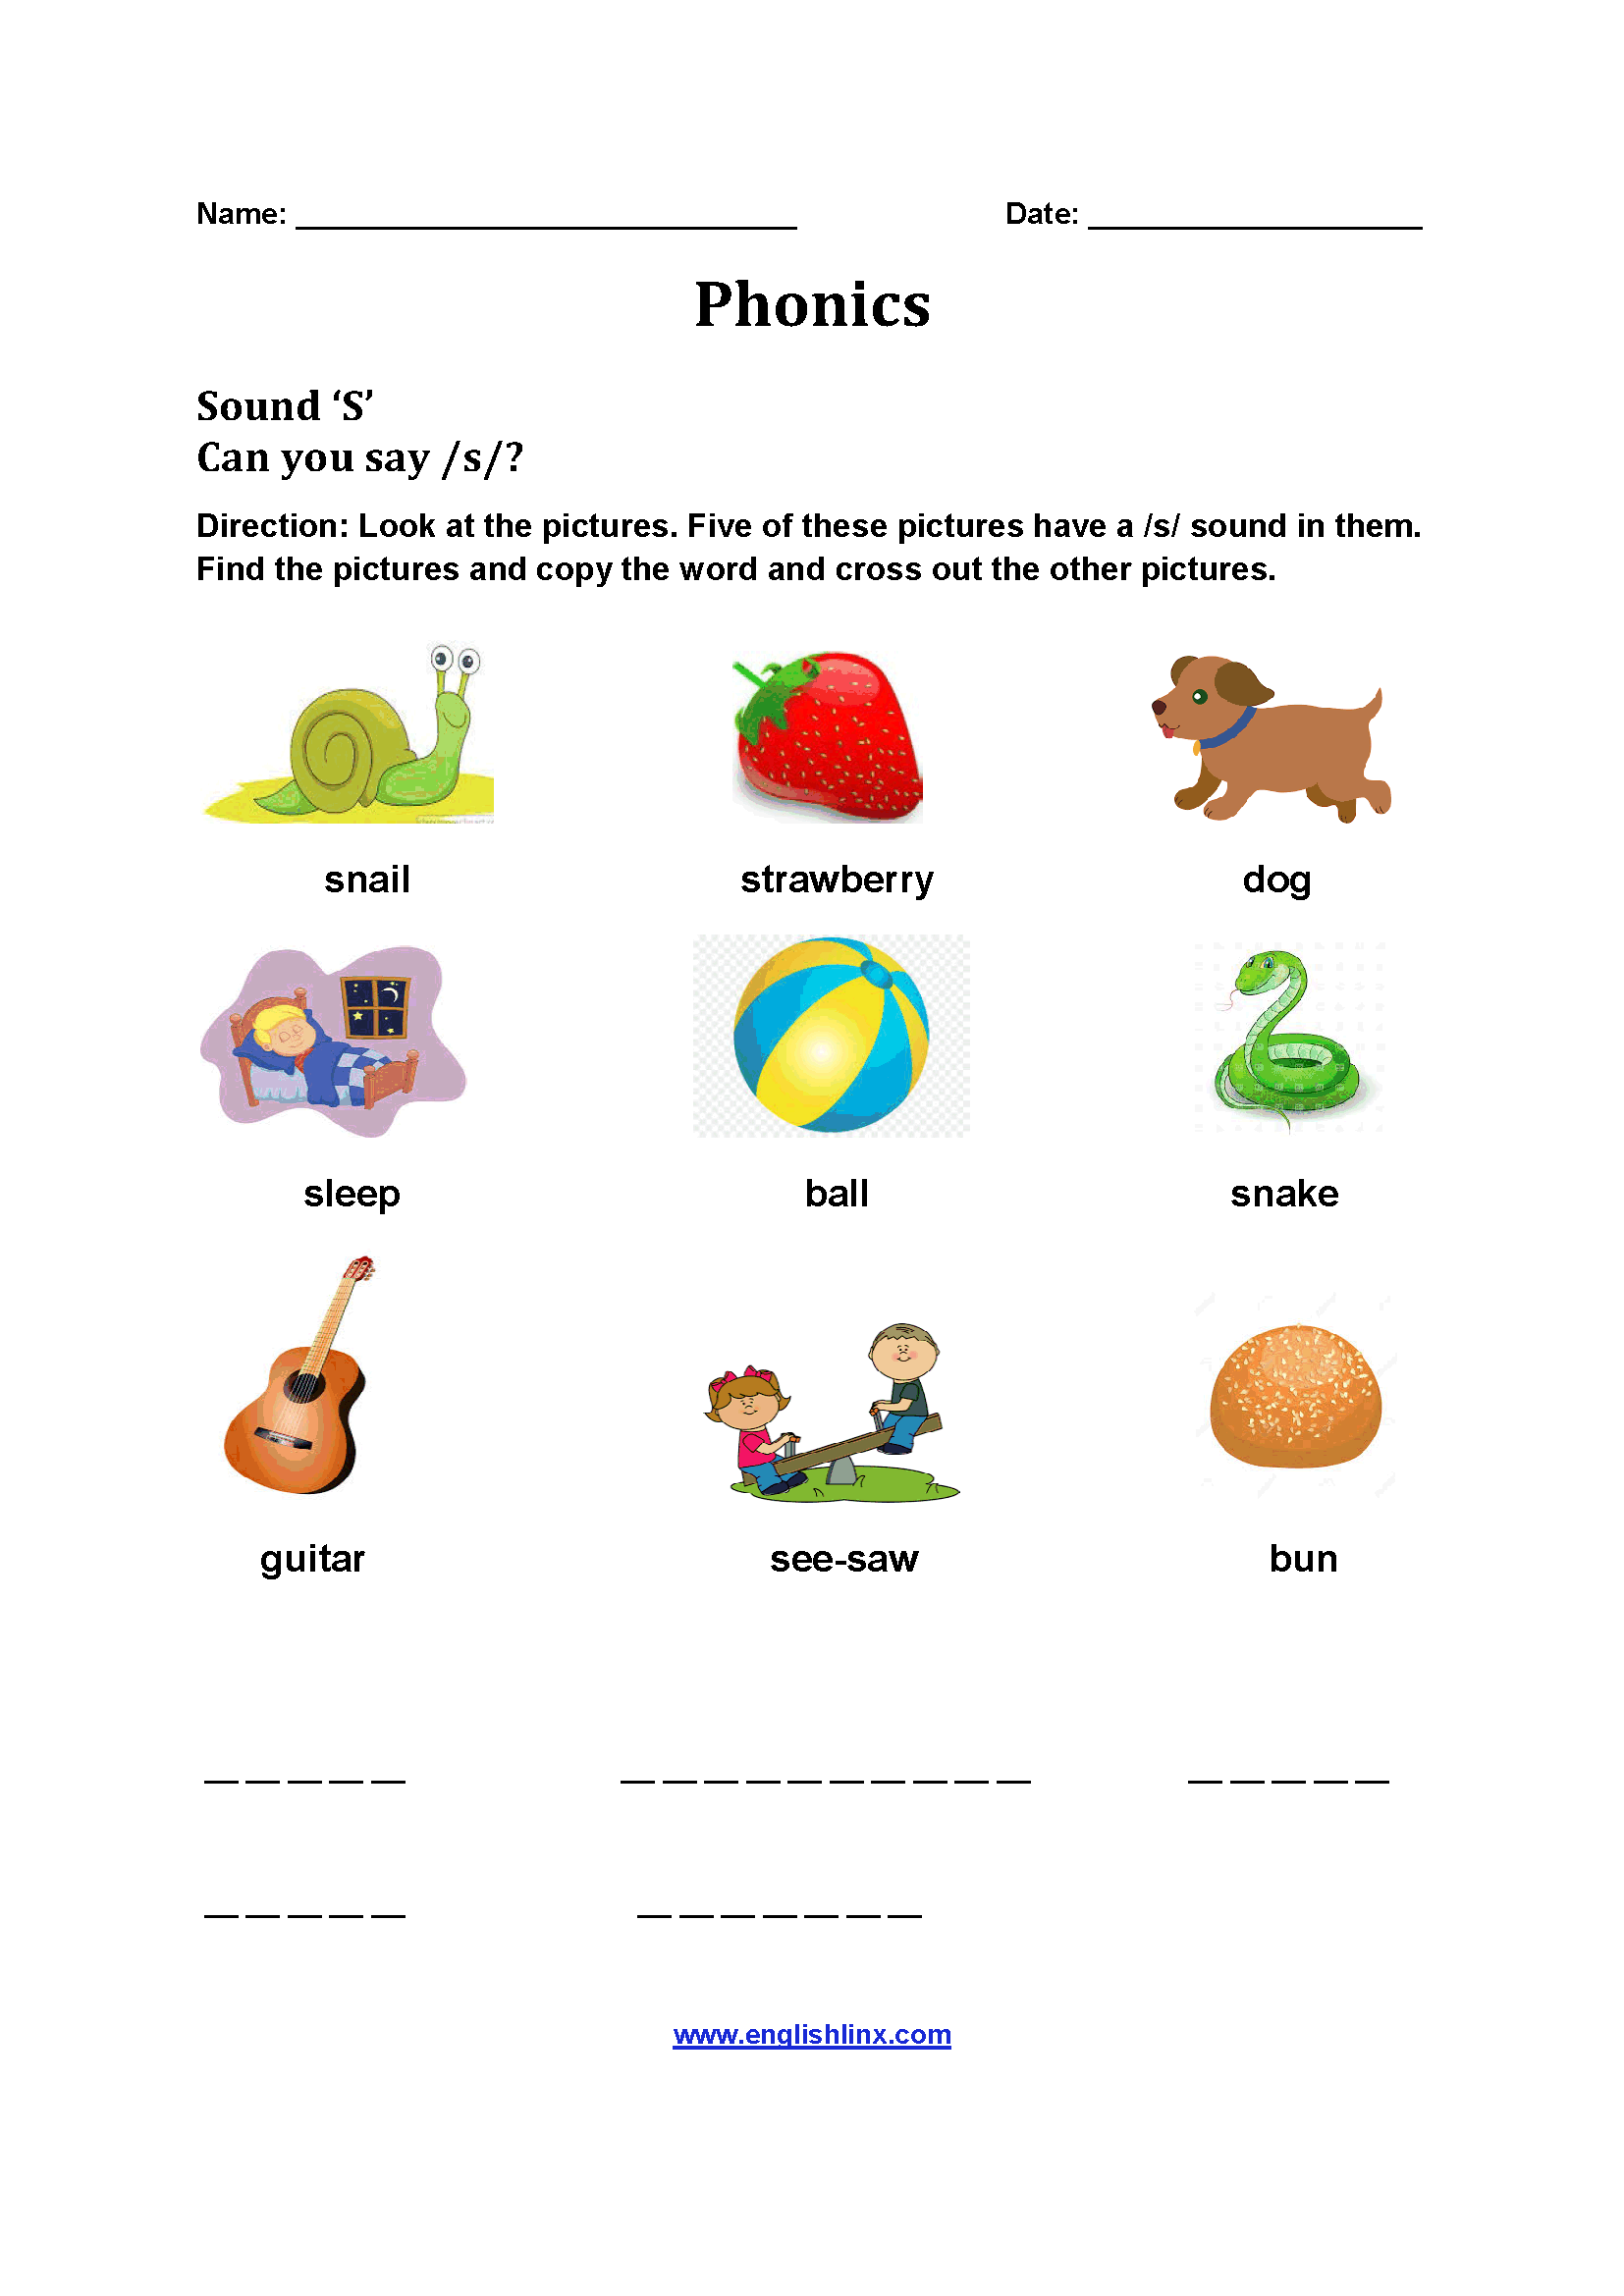 Teach Child How To Read Or Sound Phonics